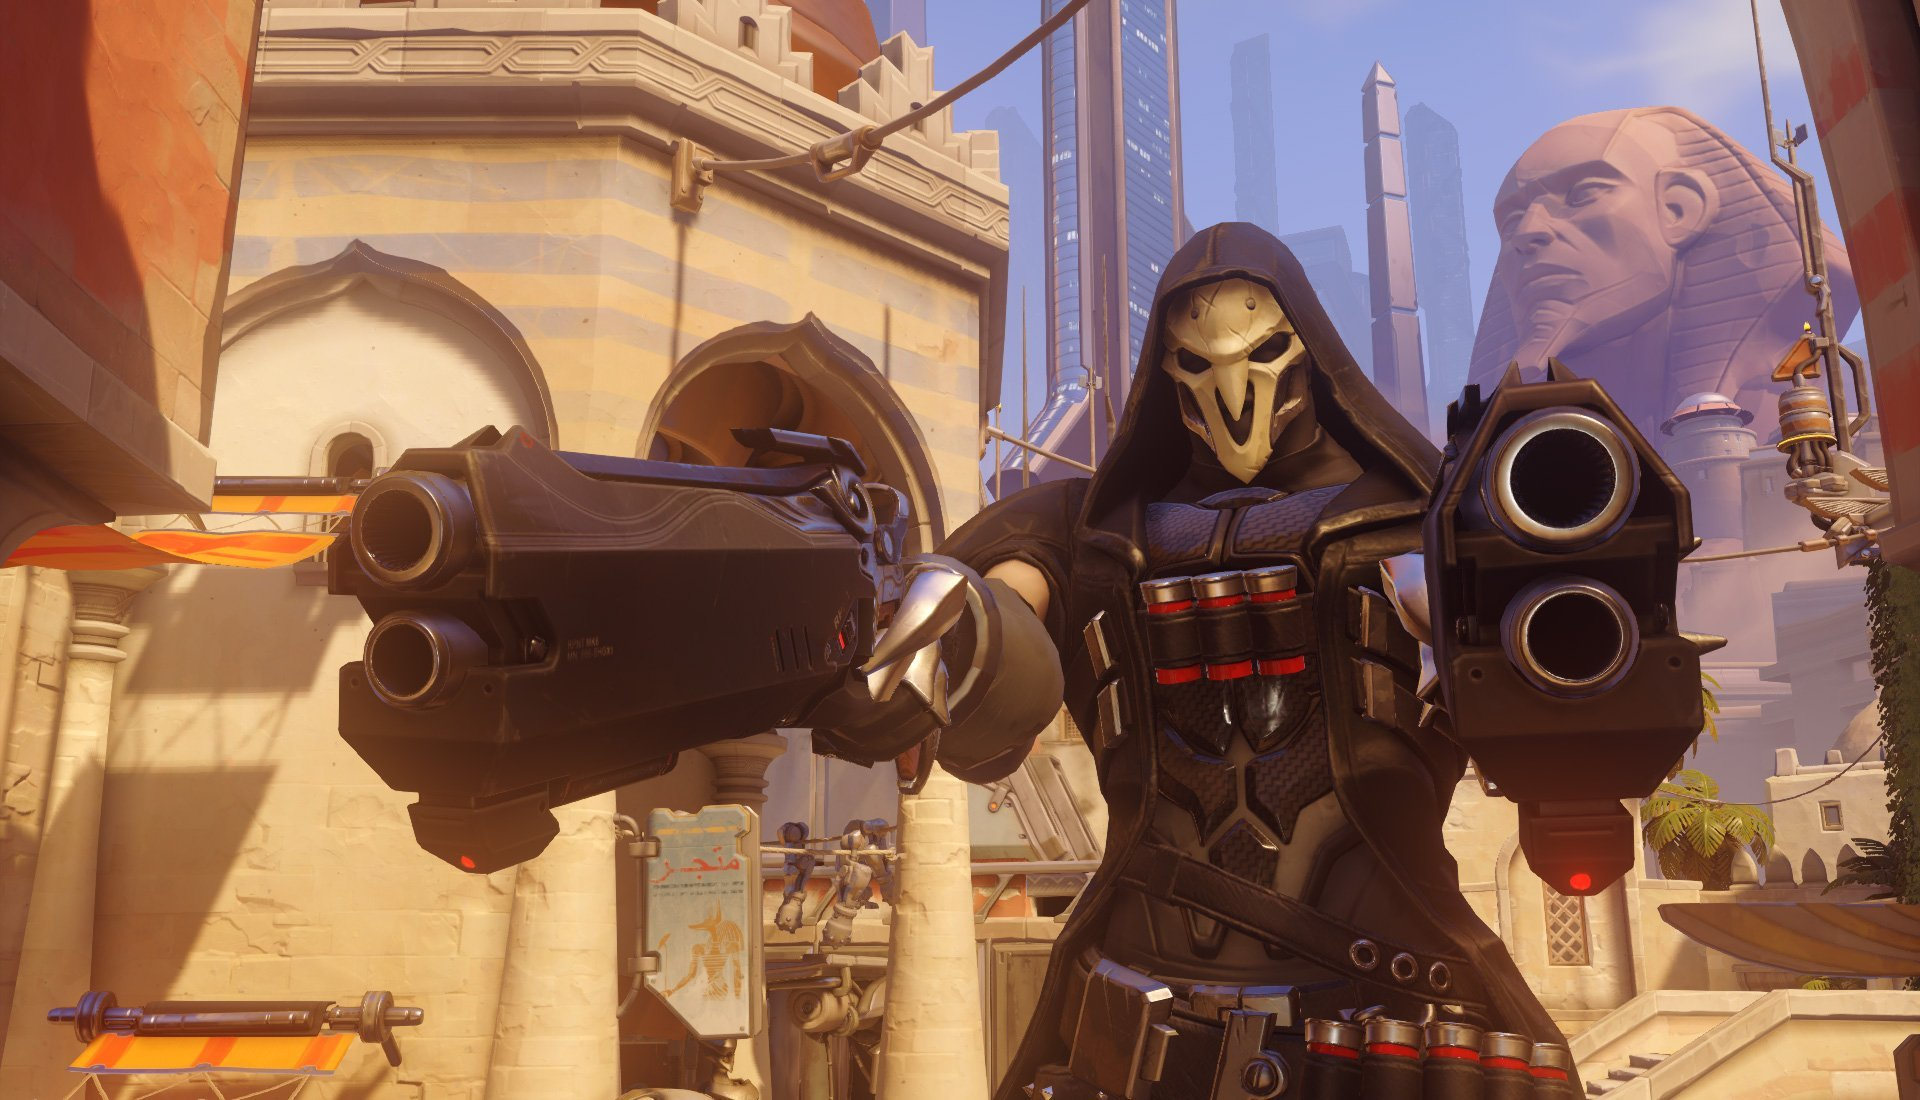 Reaper has his goth style on fleek.